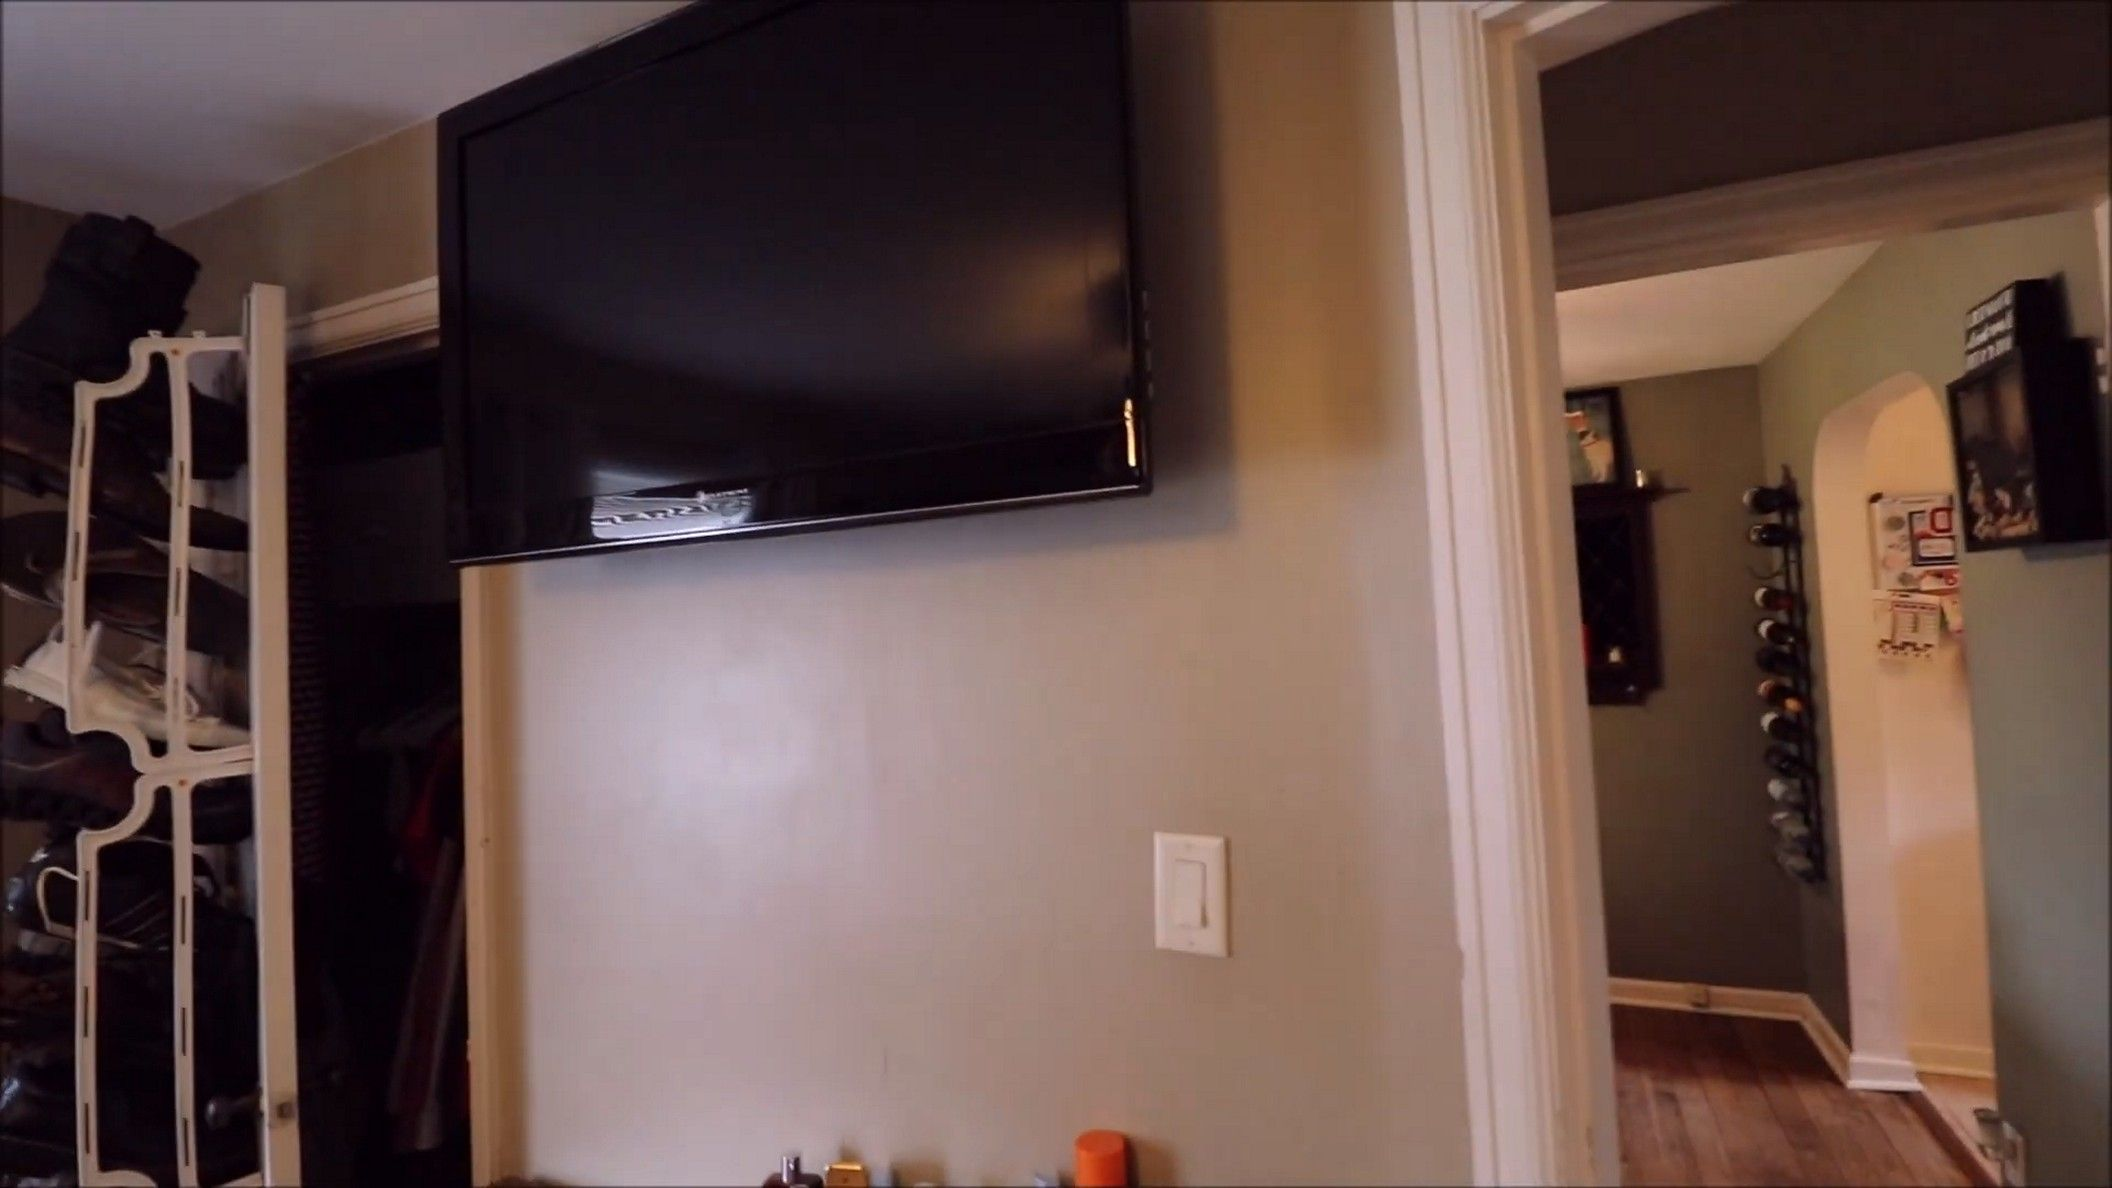 High Mounted Tv In A Bedroom Arrangement Idea Check More At Https